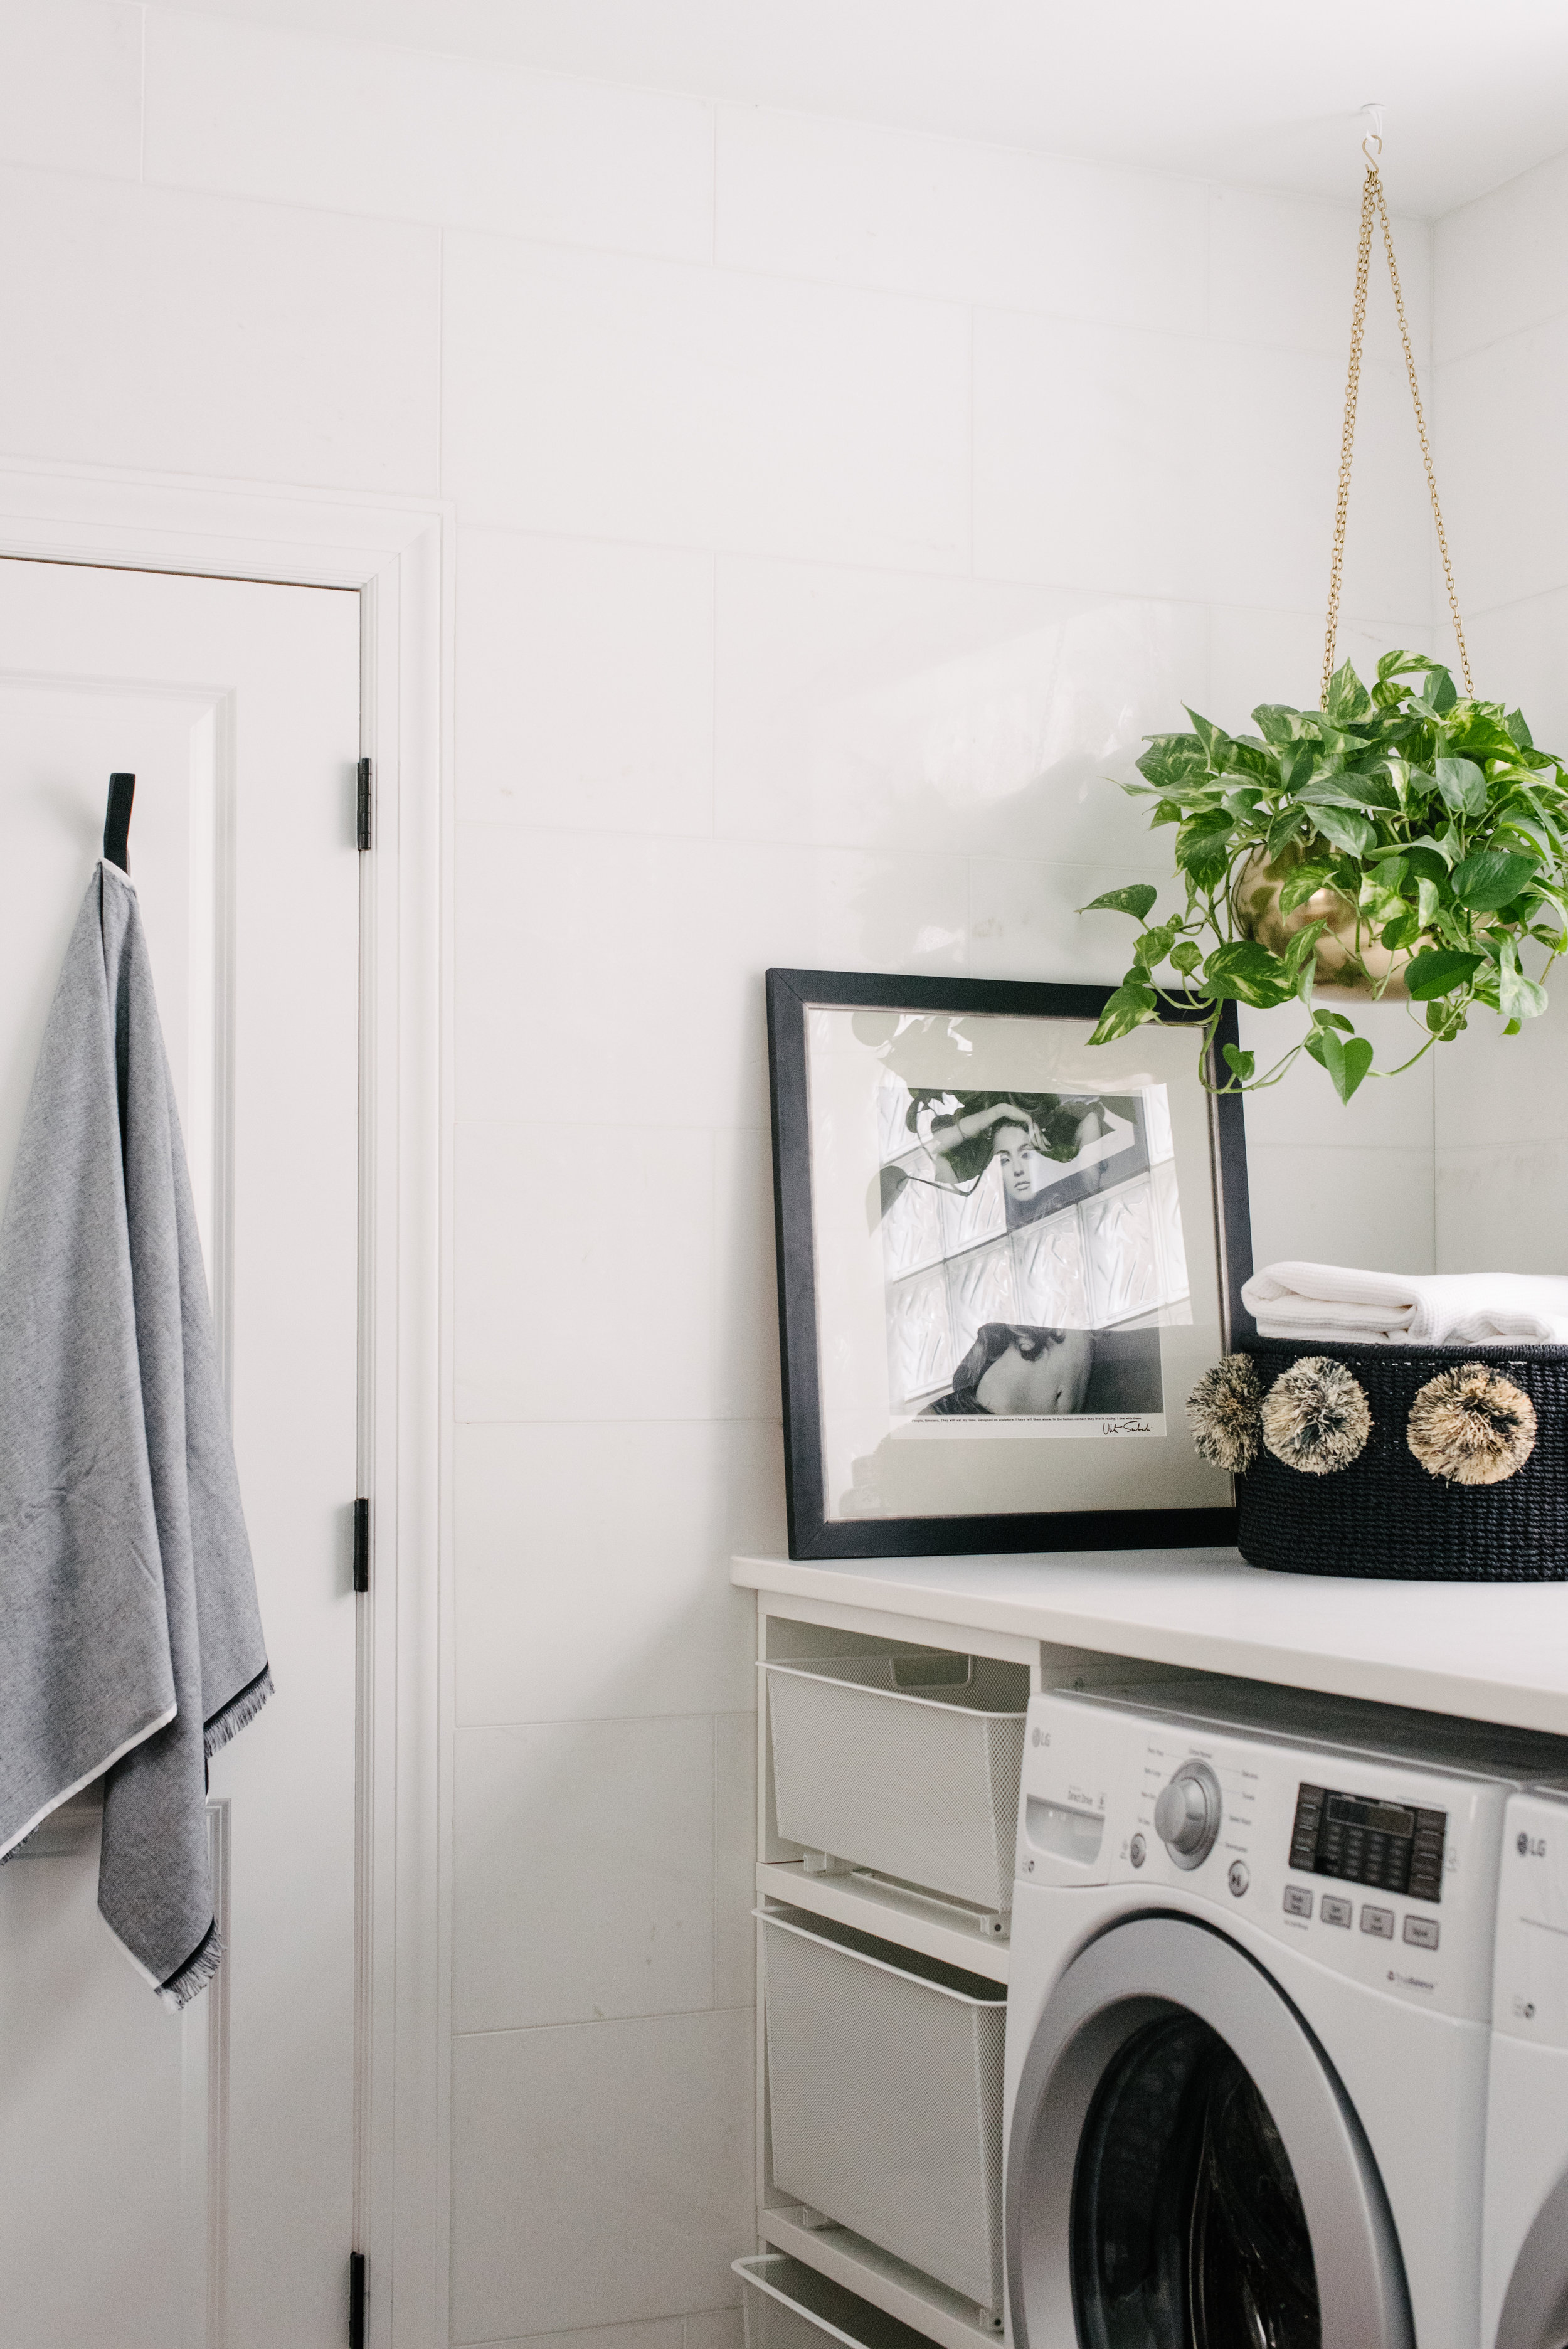 laundry and hanging plant.jpg